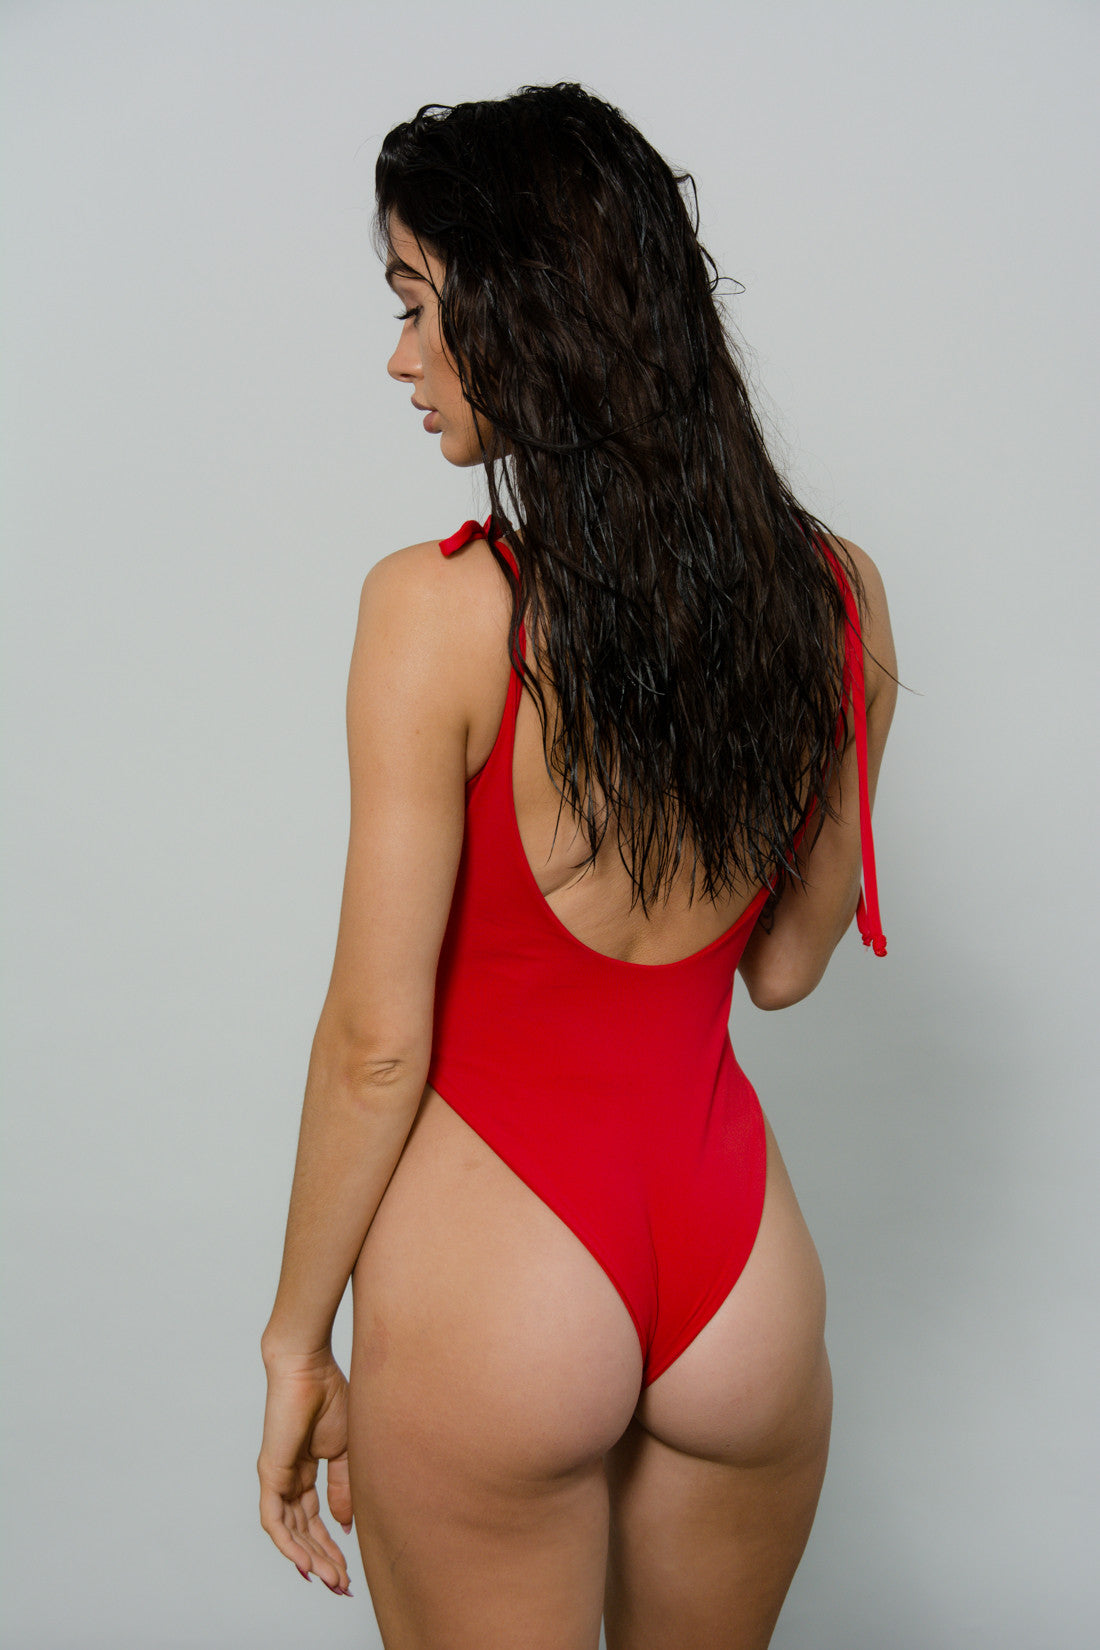 THE 'TIES' SWIMSUIT